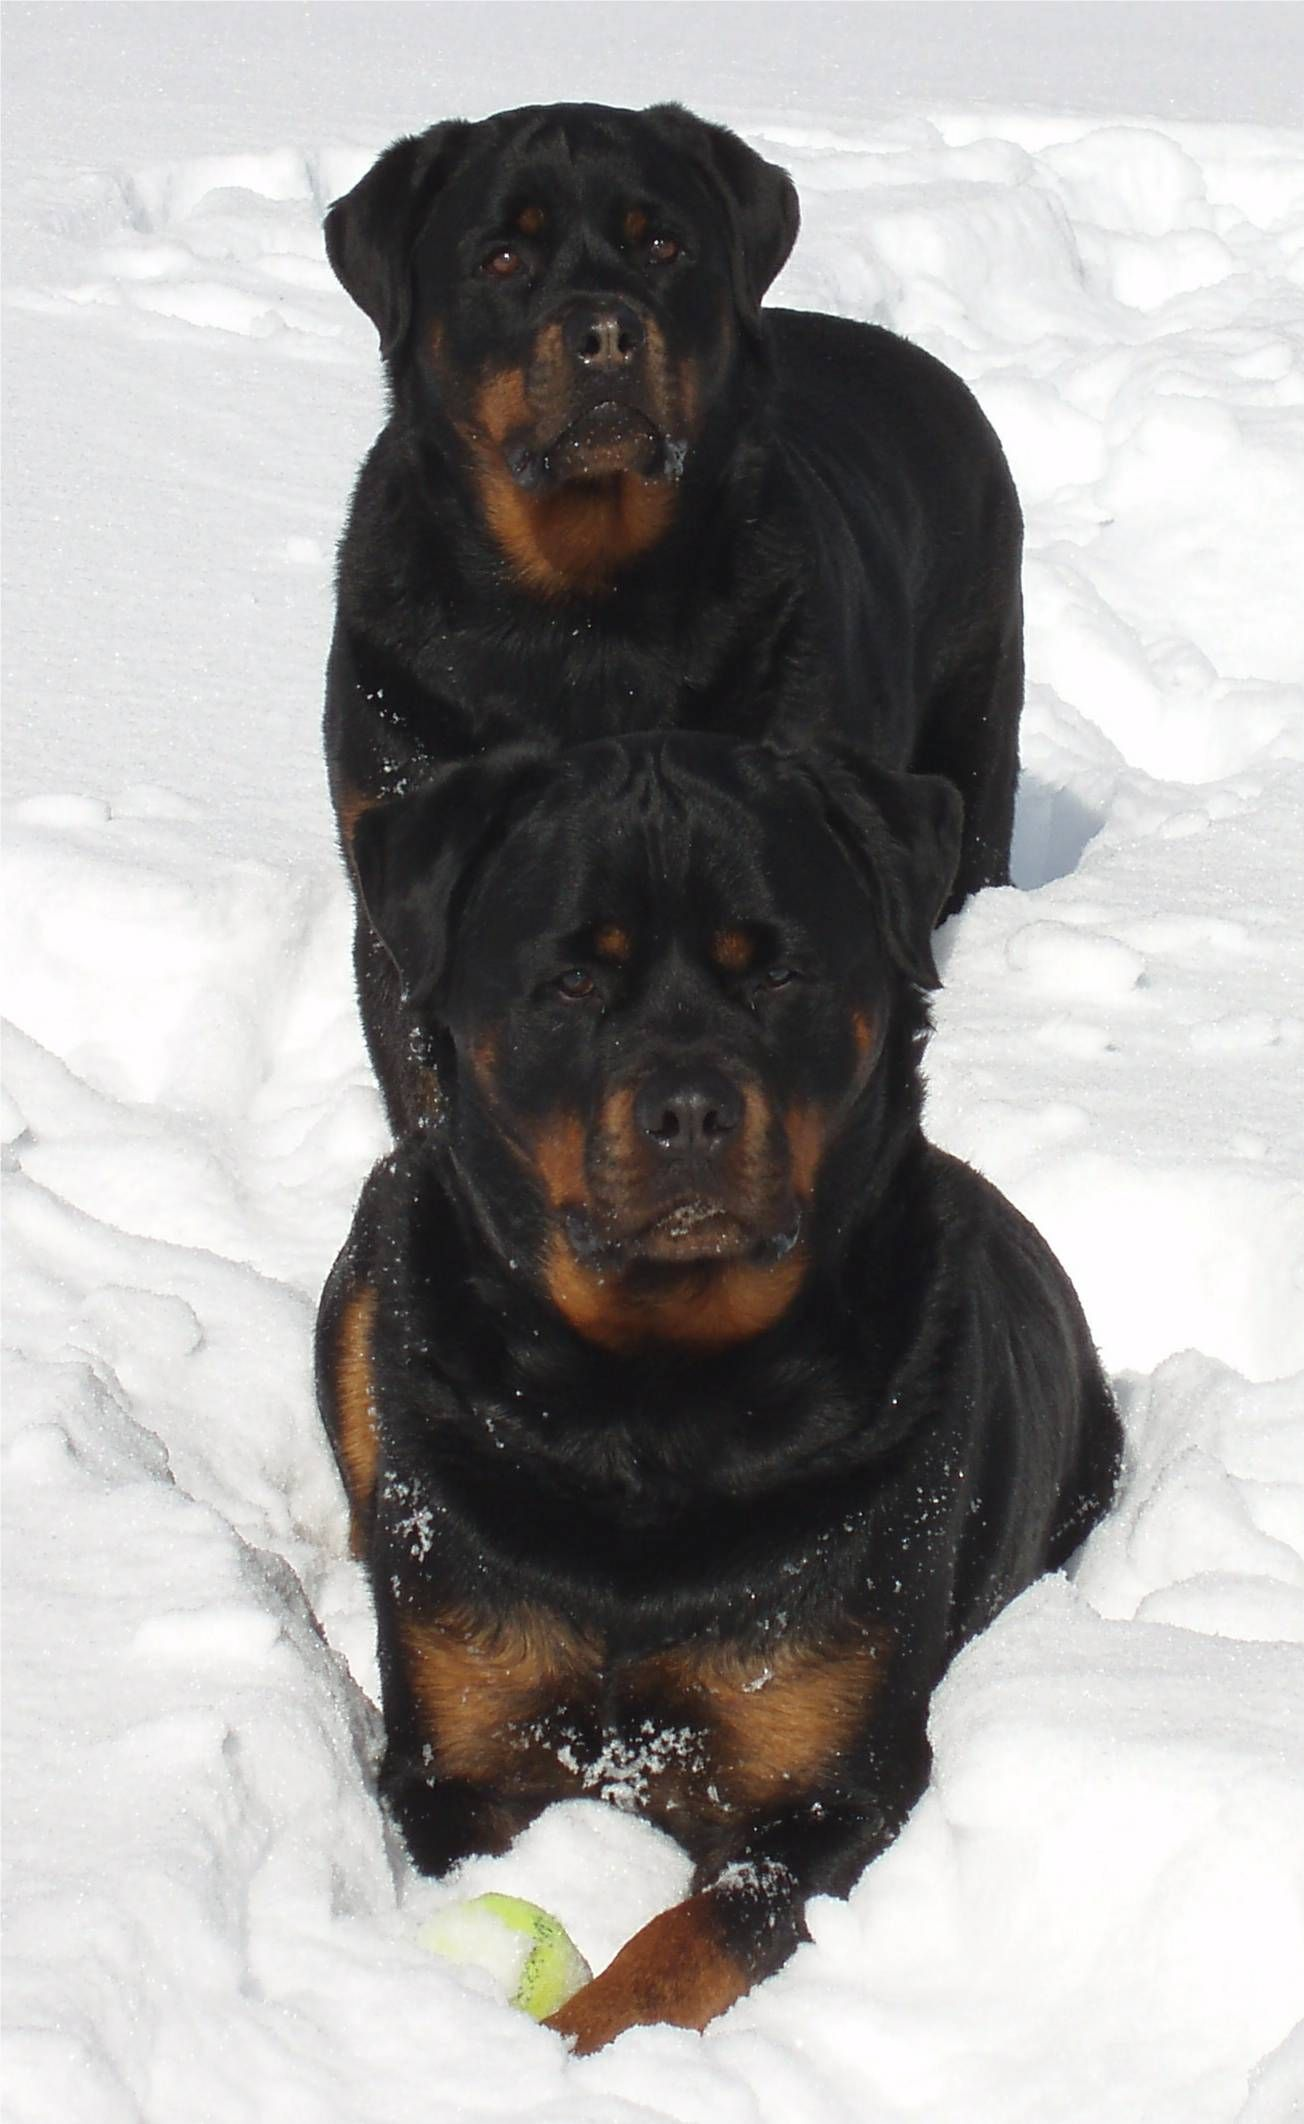 Best rottweiler websites